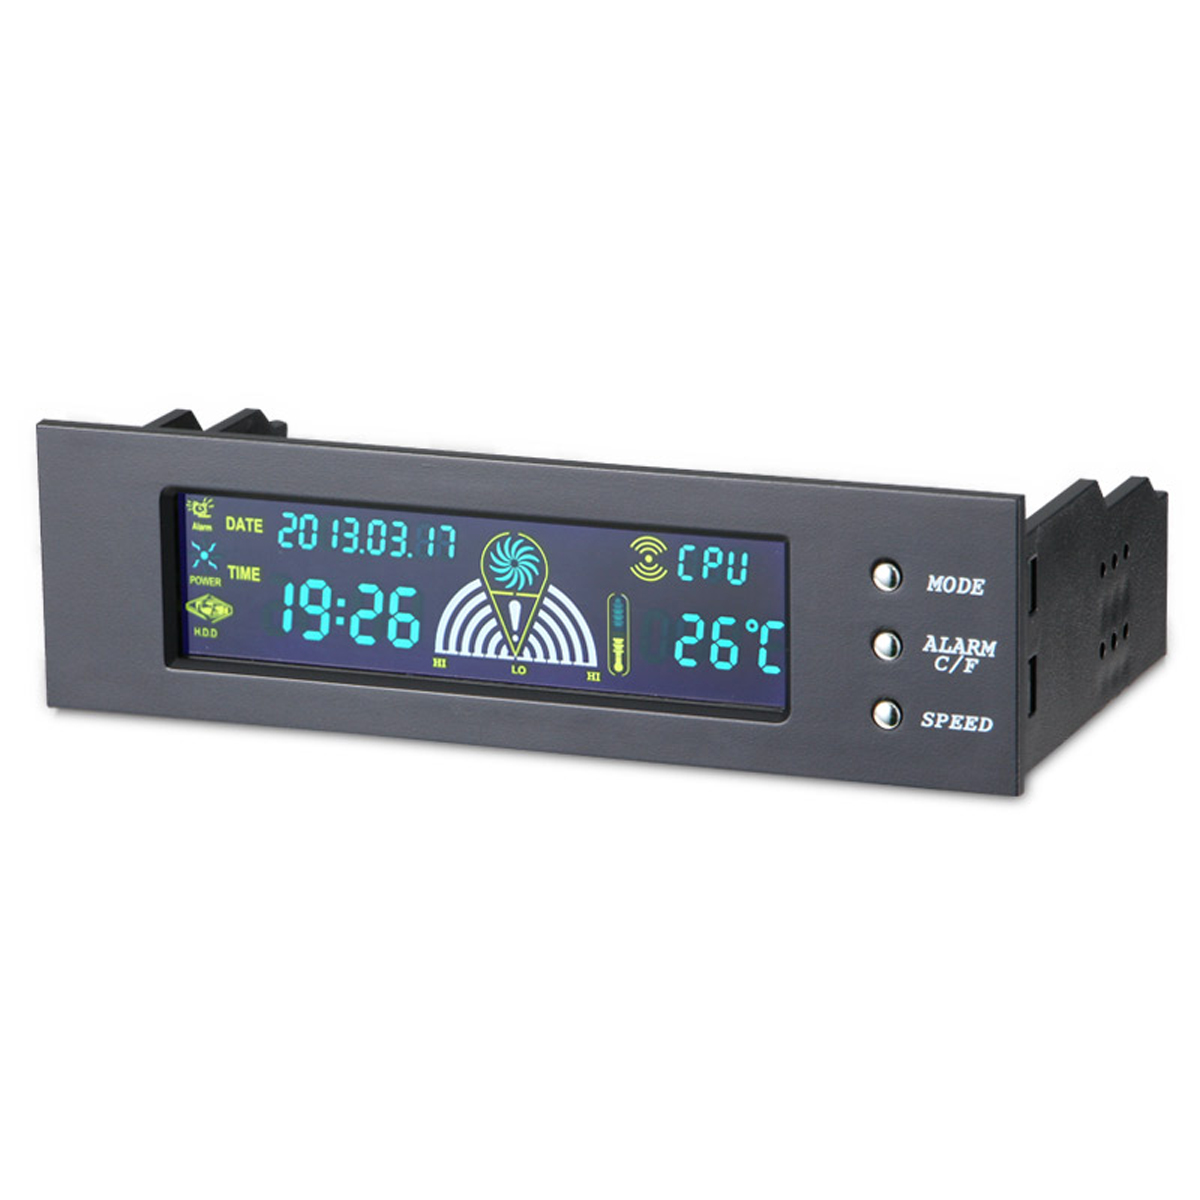 5.25inch 5-12V PC Computer Fan Controller 3 Fan Speed Controller Temperature Sensor LCD Digital Display Front Panel for PC 6 inch 2 in 1 desktop clock display fan usb 2 speed 5 mini fanfutural digital drop shipping augg18